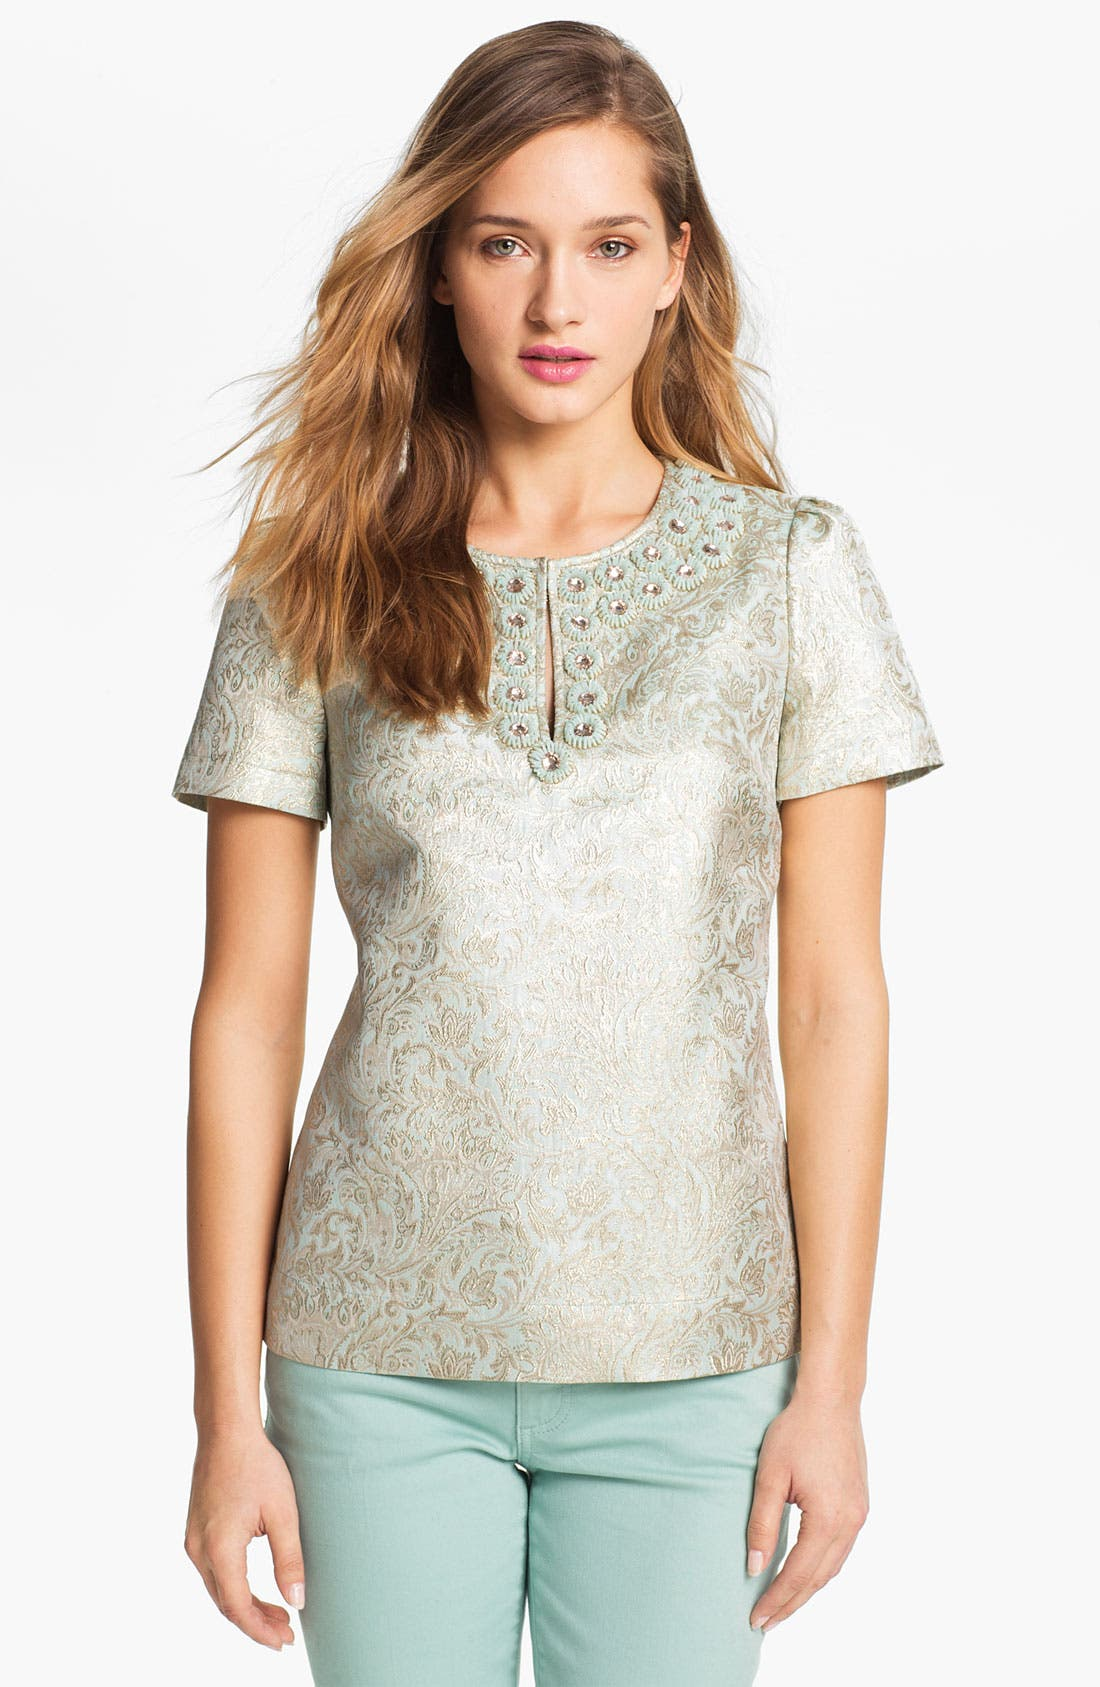 Alternate Image 1 Selected - Tory Burch 'Lola' Metallic Silk Top